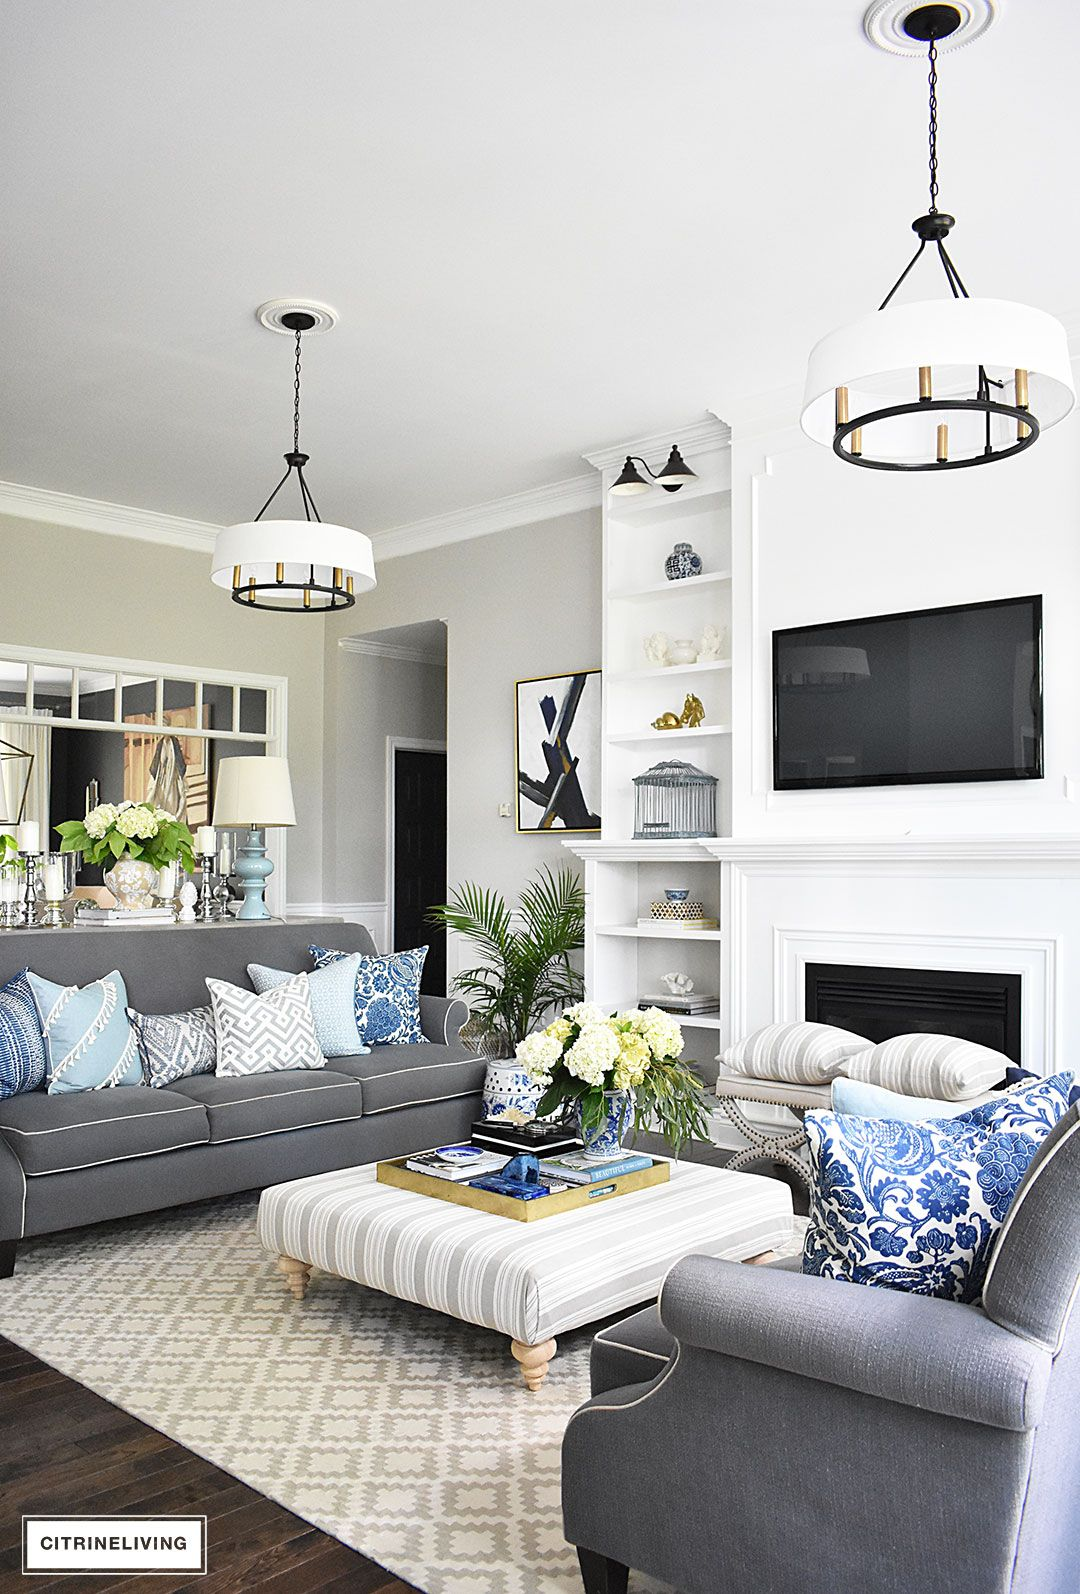 Open Concept Kitchen Living Room Ideas: 20+ Fresh Ideas For Decorating With Blue And White